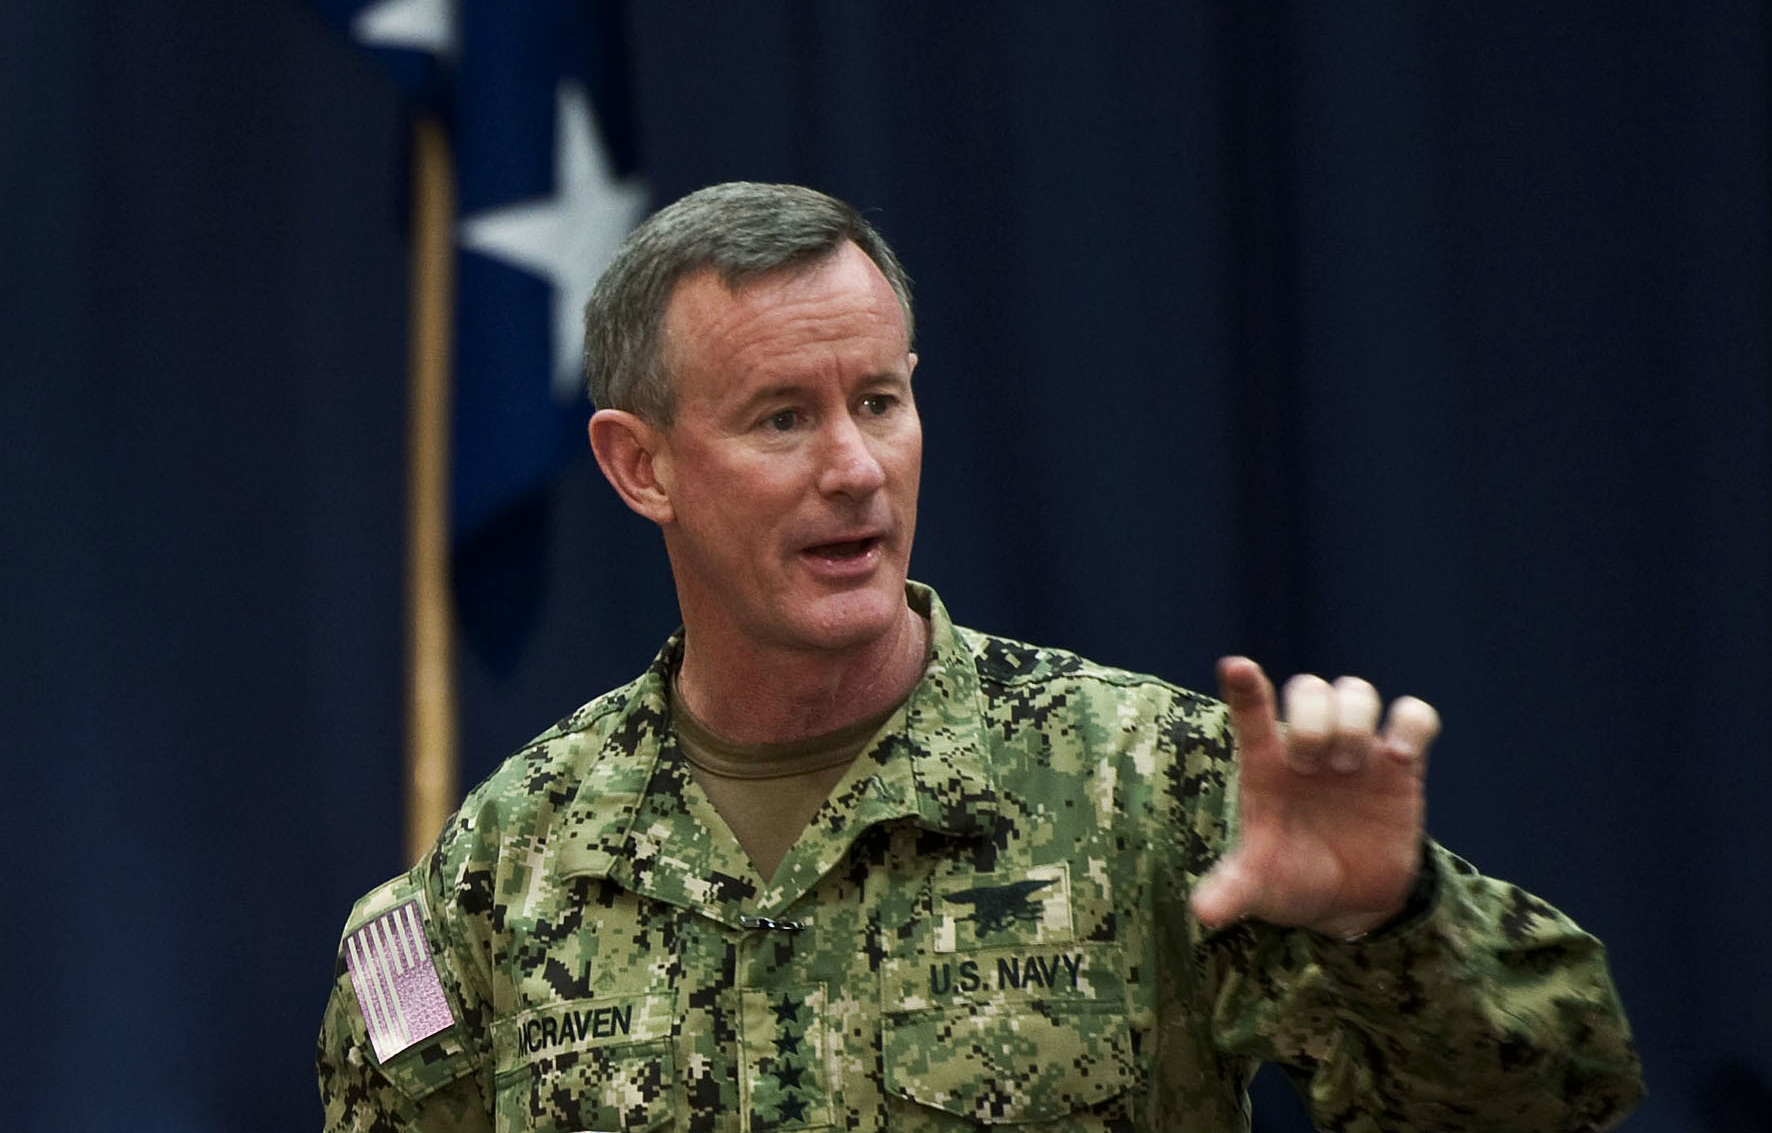 Almirante William H. McRaven hazte la cama